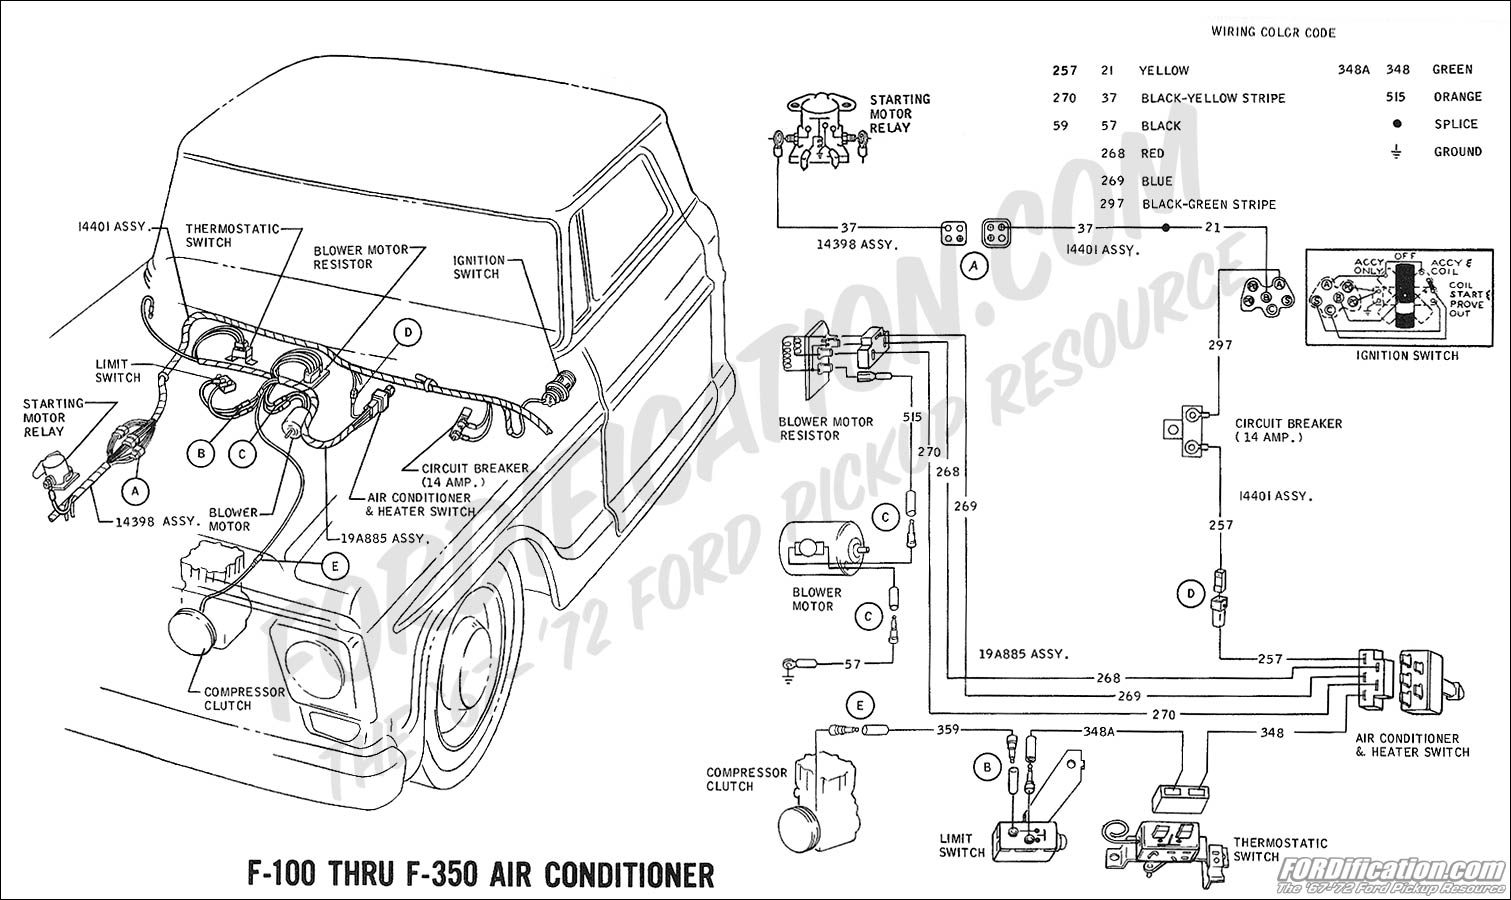 1978 Ford Truck Wiring Schematic Books Of Diagram Cj5 Car Air Conditioning System 2003 Nissan Technical Drawings And Schematics Section H Rh Fordification Com